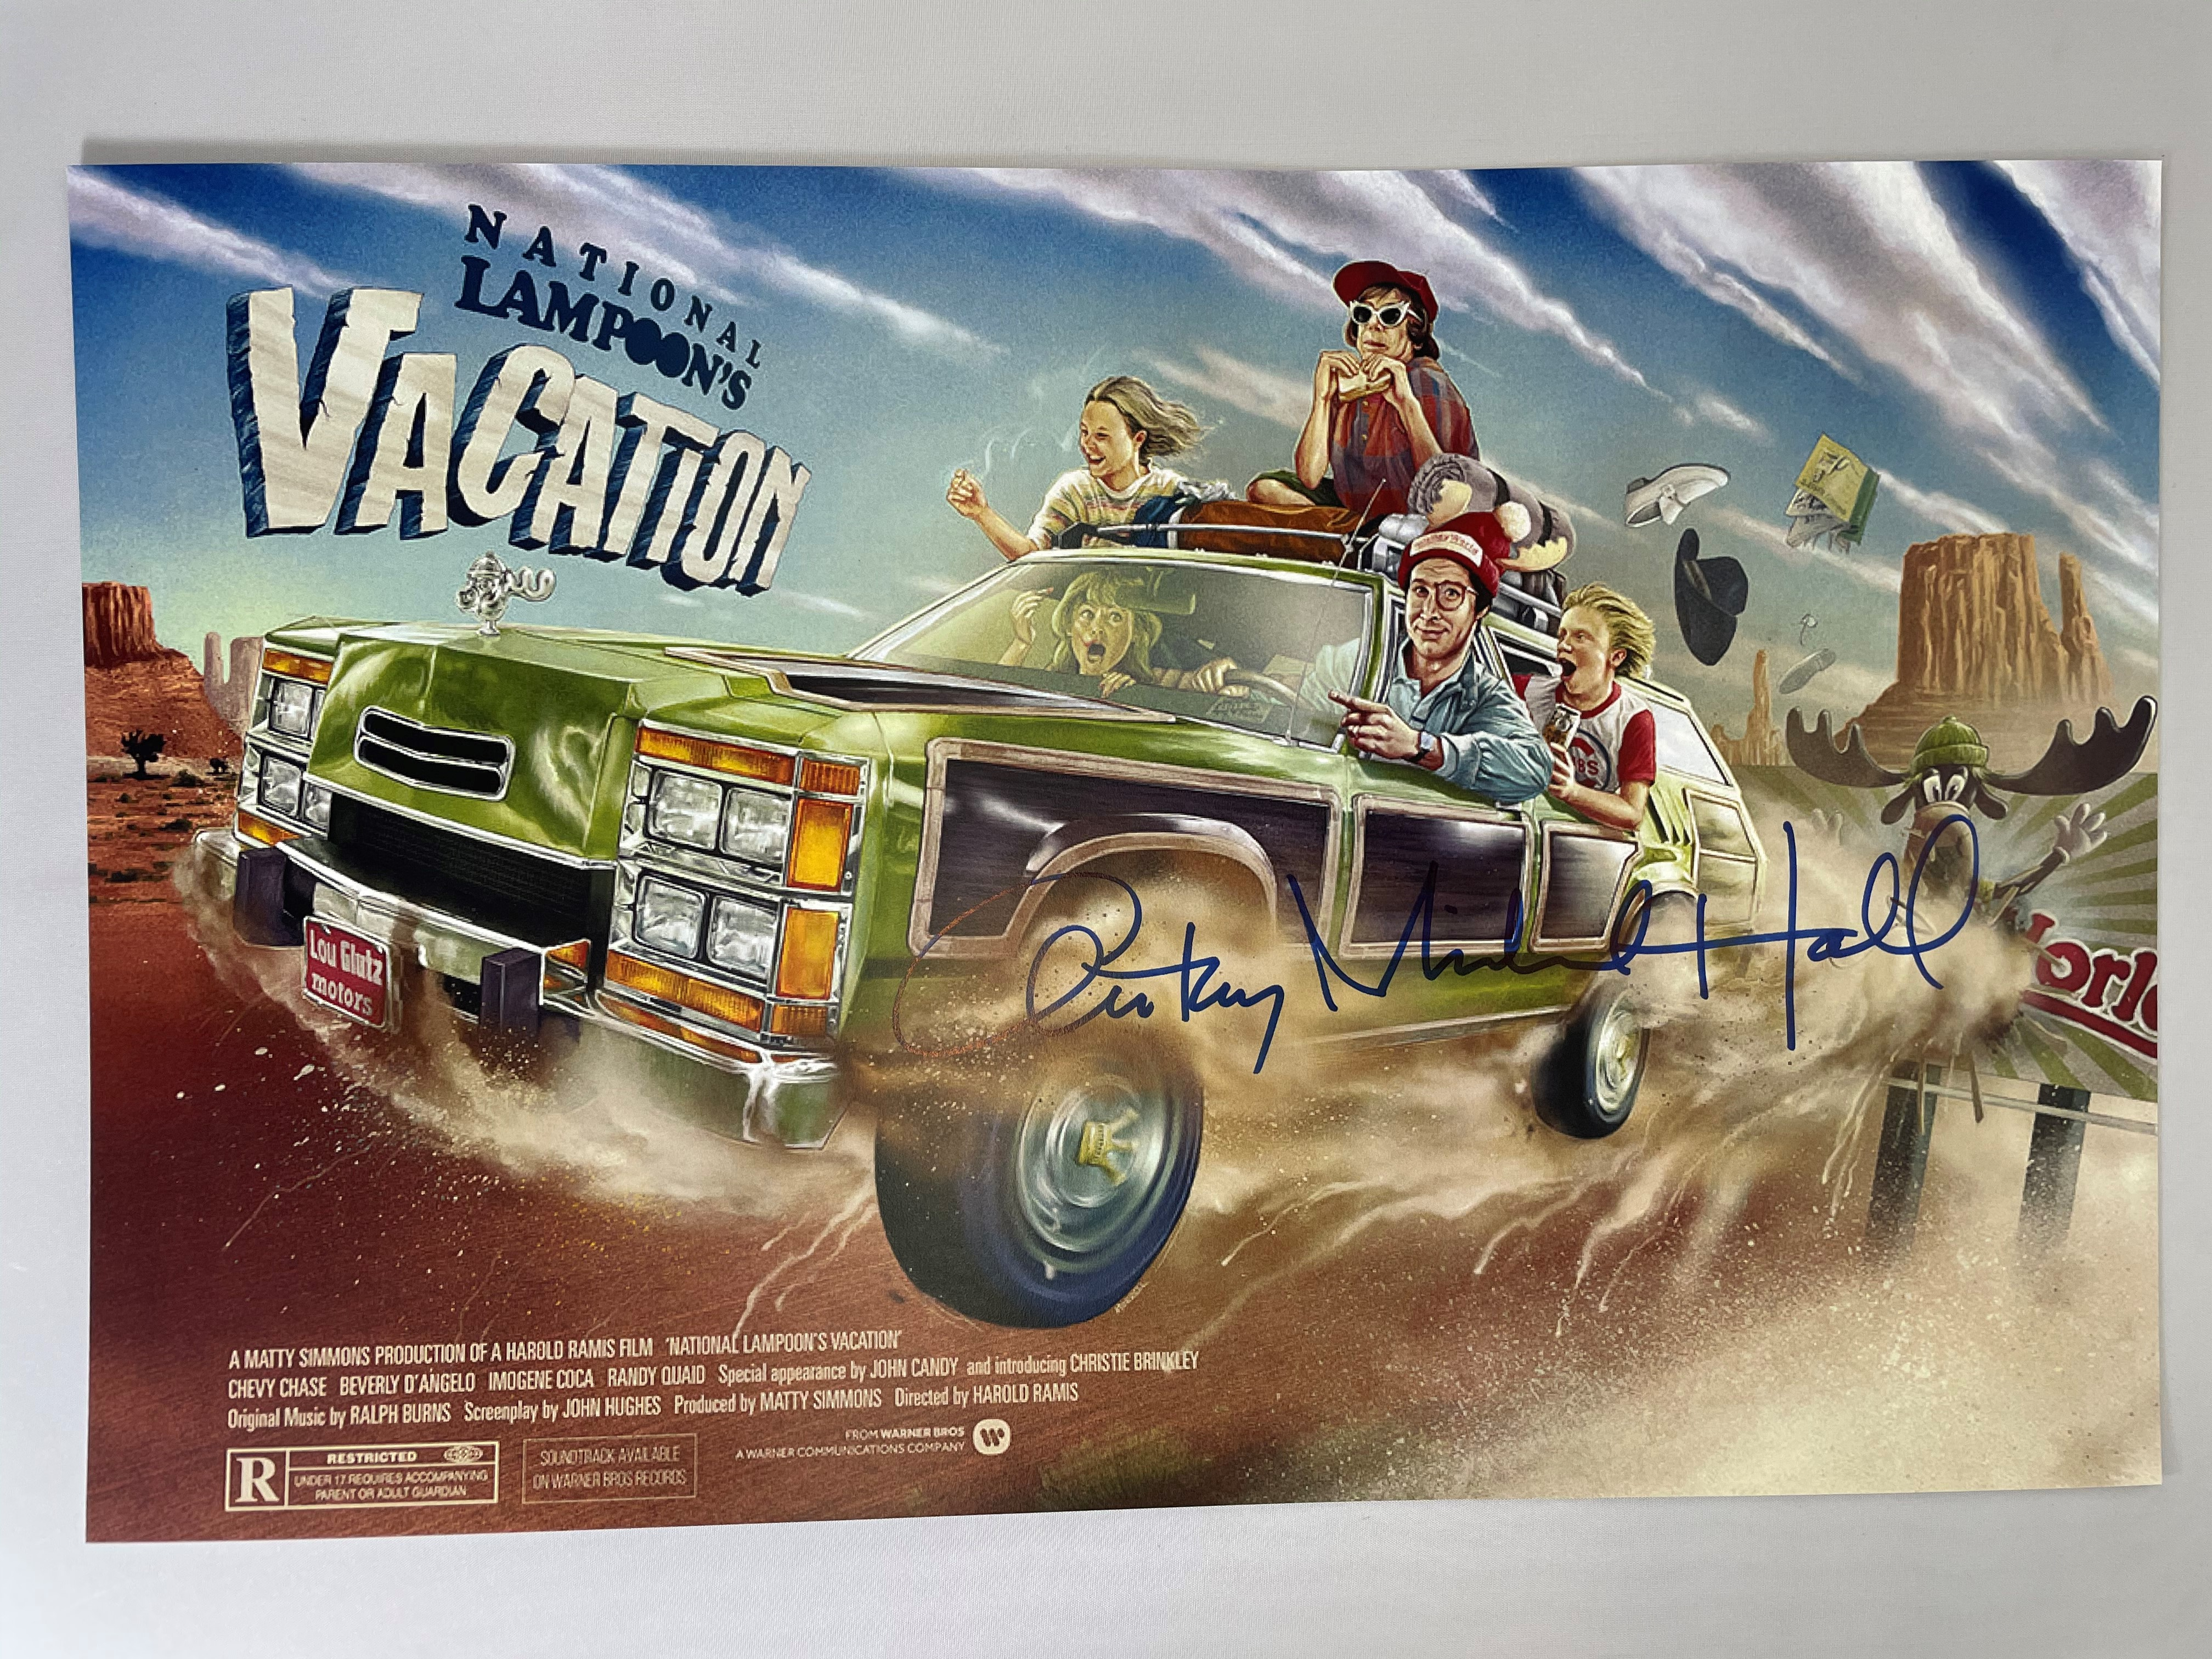 National LAMPOON'S Vacation Poster B 11x17 Signed by Anthony Michael Hall